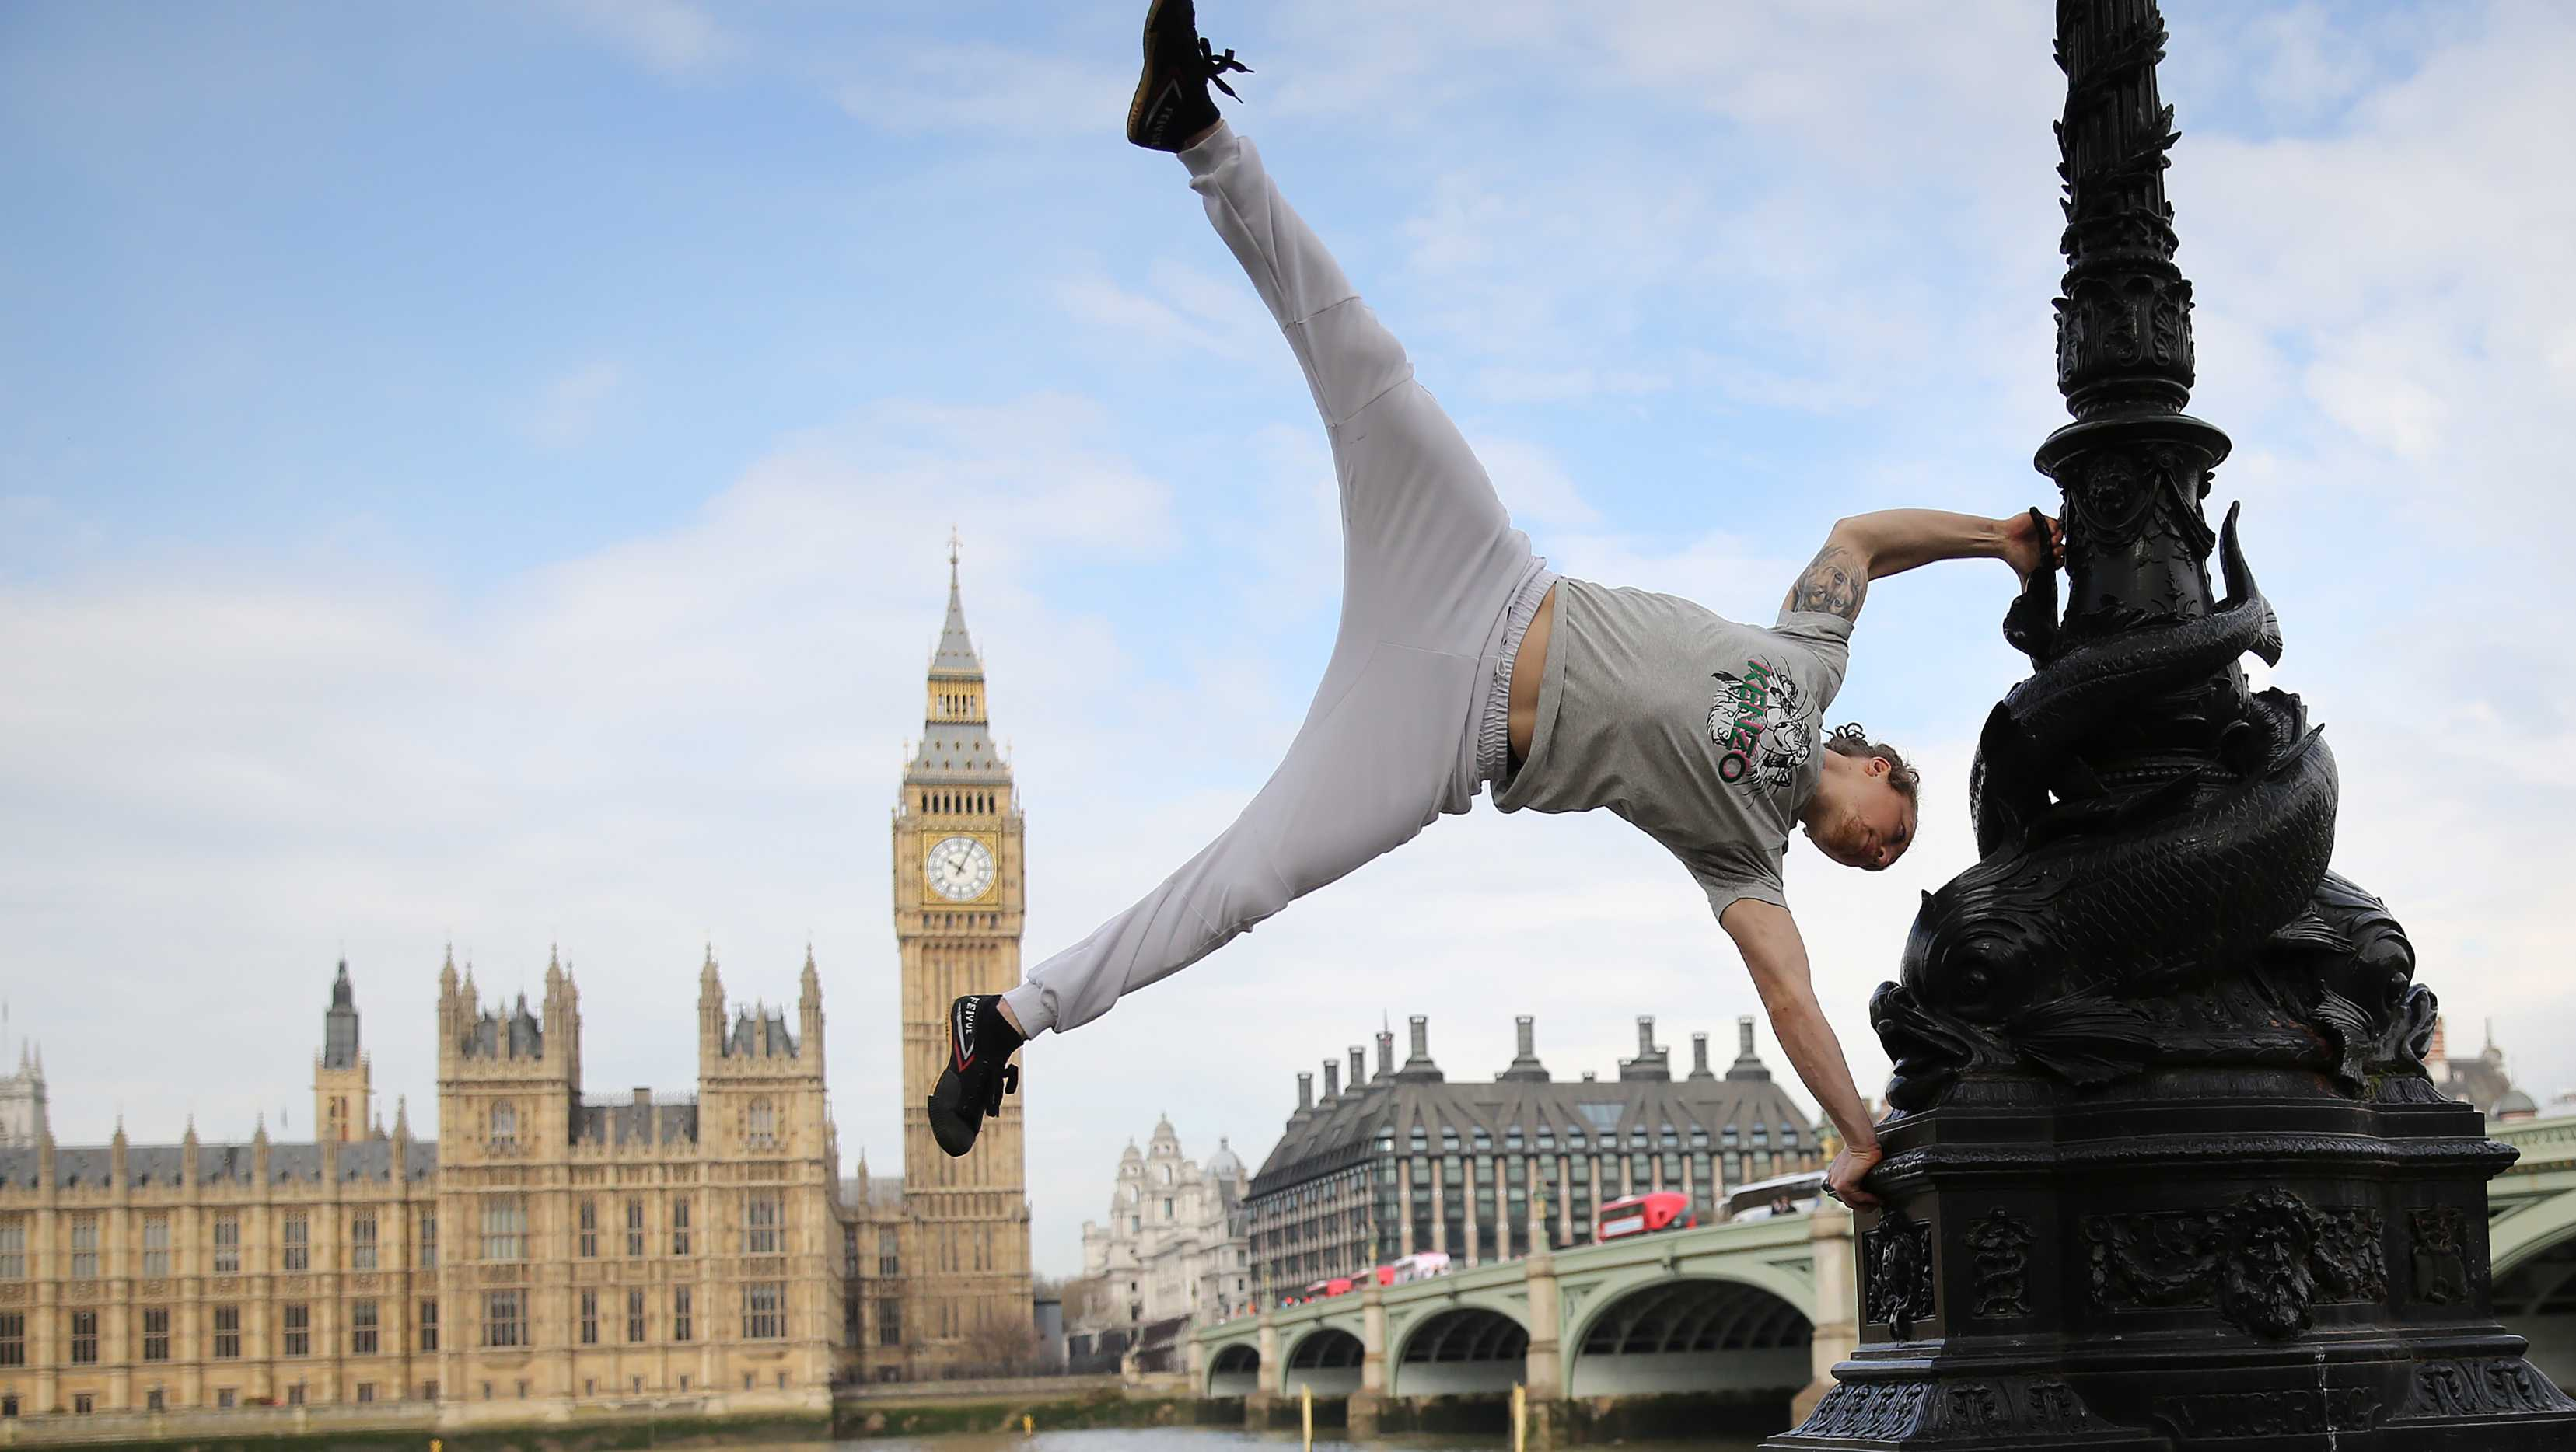 British Parkour expert Tim Shieff performs a hand-stand in front of the House of Commons, as he launches Jungle Book inspired Parkour masterclasses on London's Southbank.